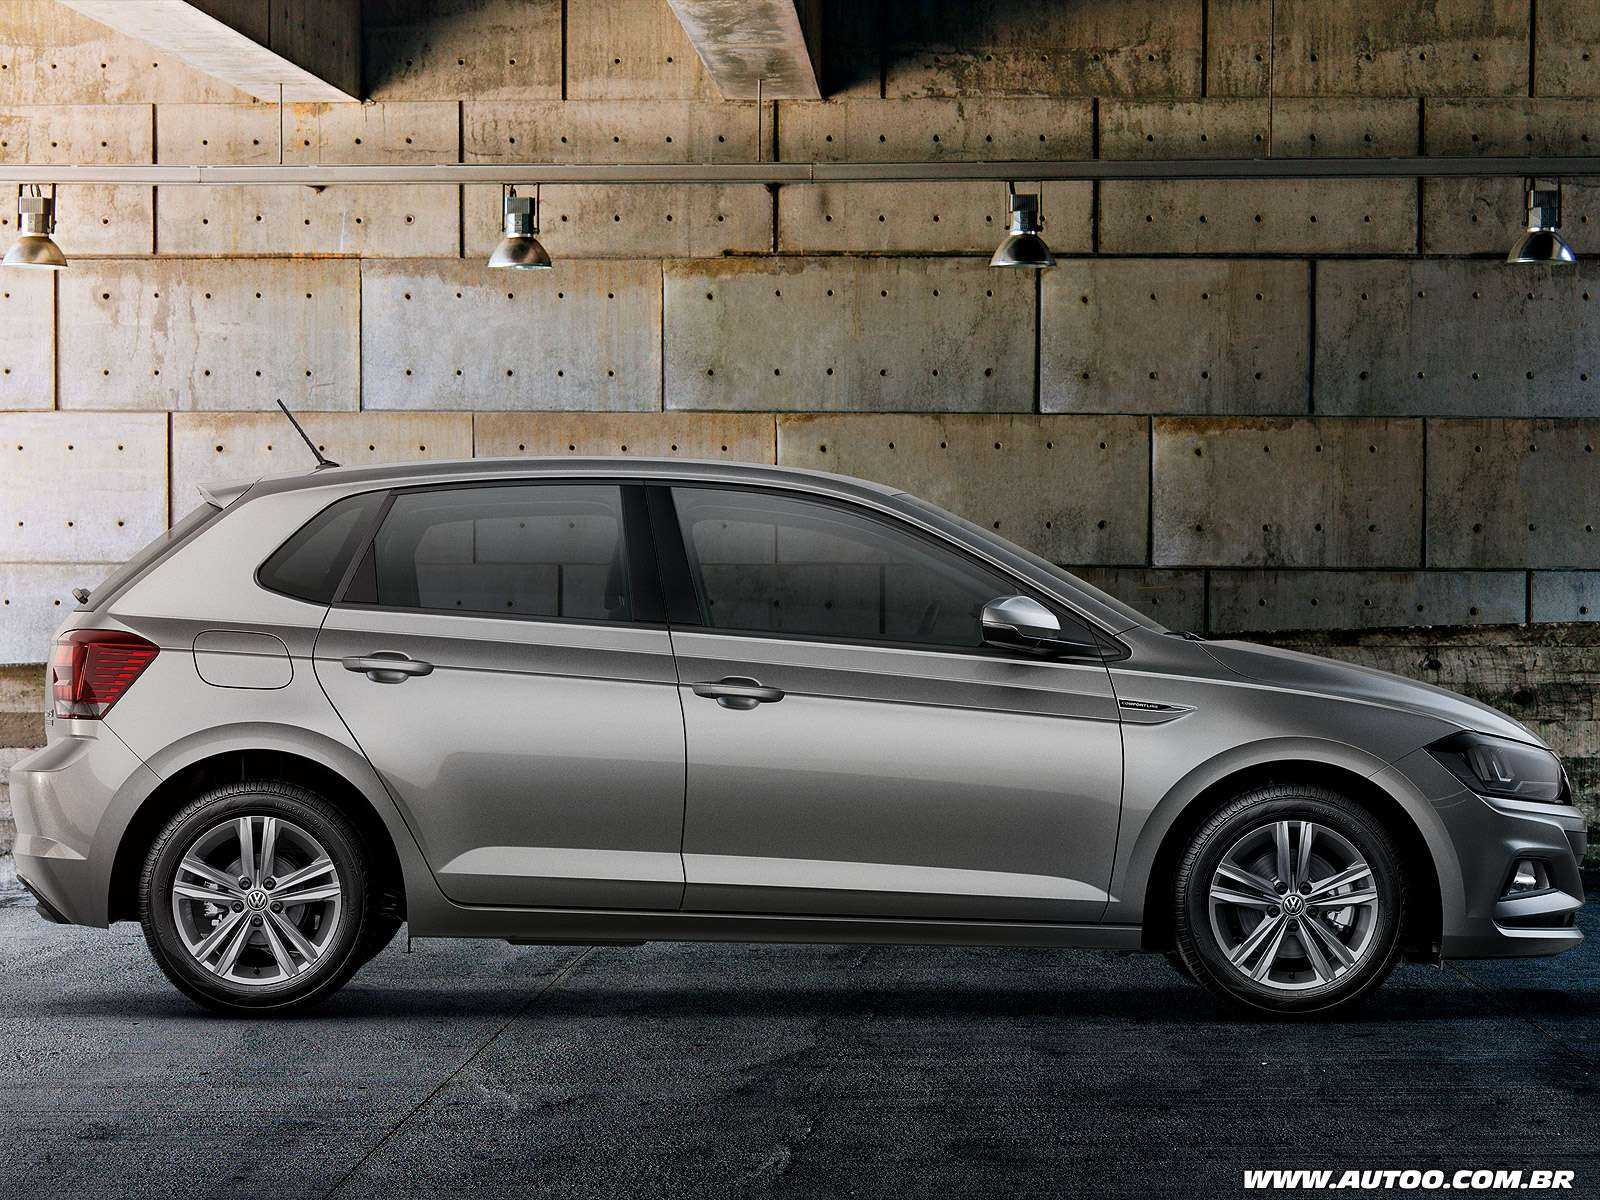 VolkswagenPolo 2018 - lateral